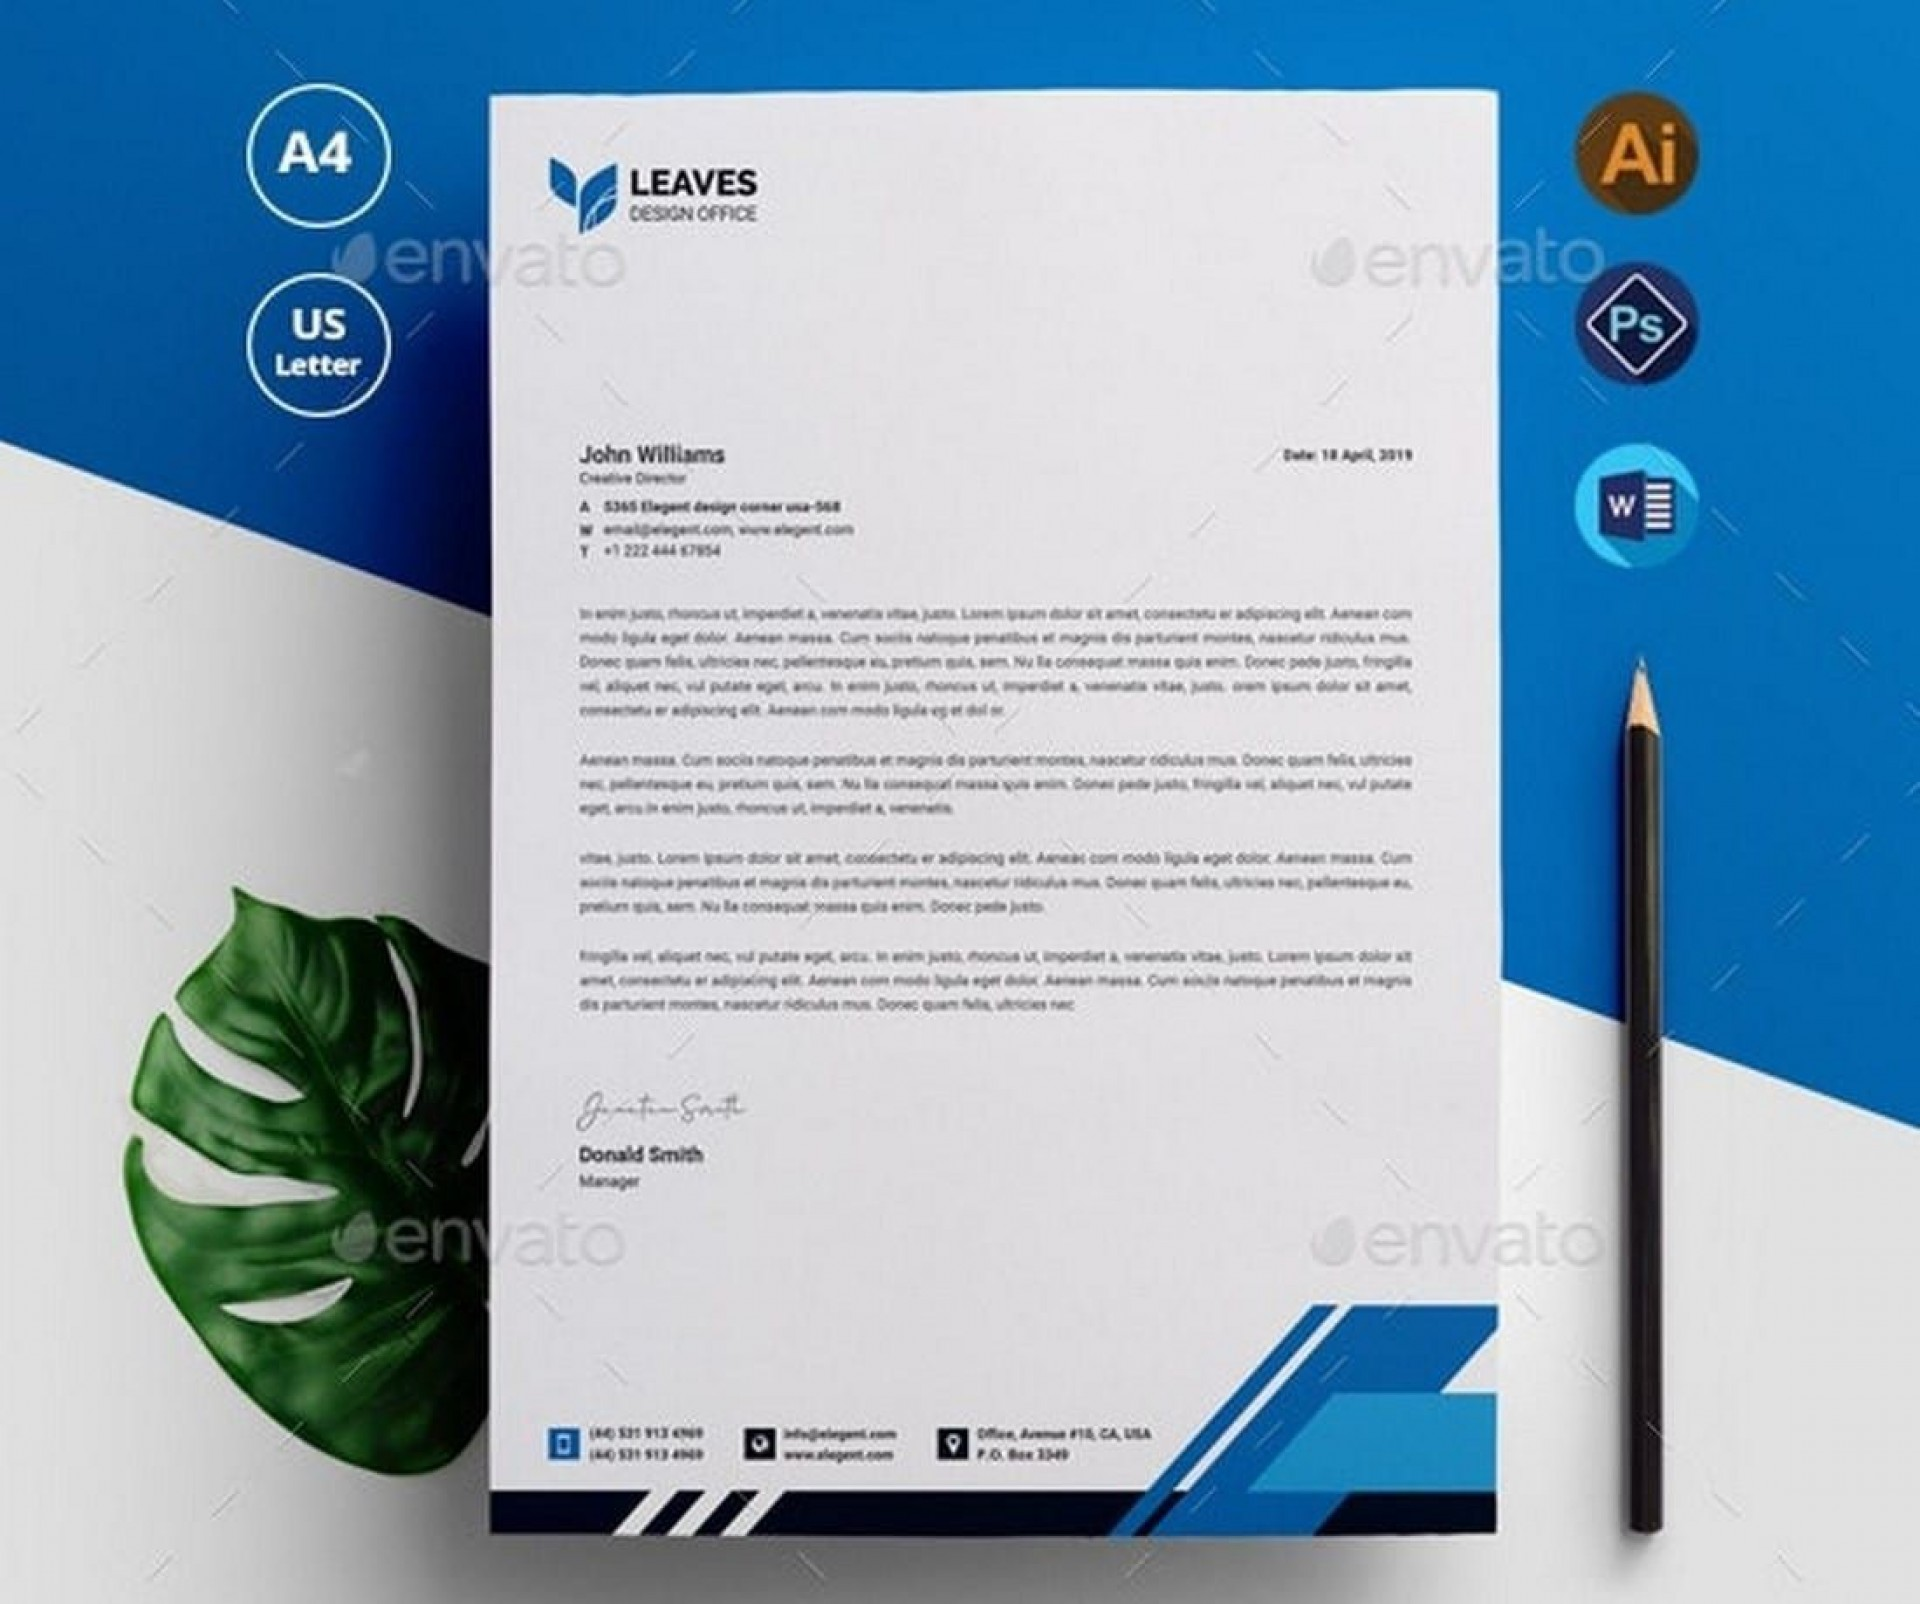 006 Outstanding Letterhead Template Free Download Psd Image  Corporate A41920